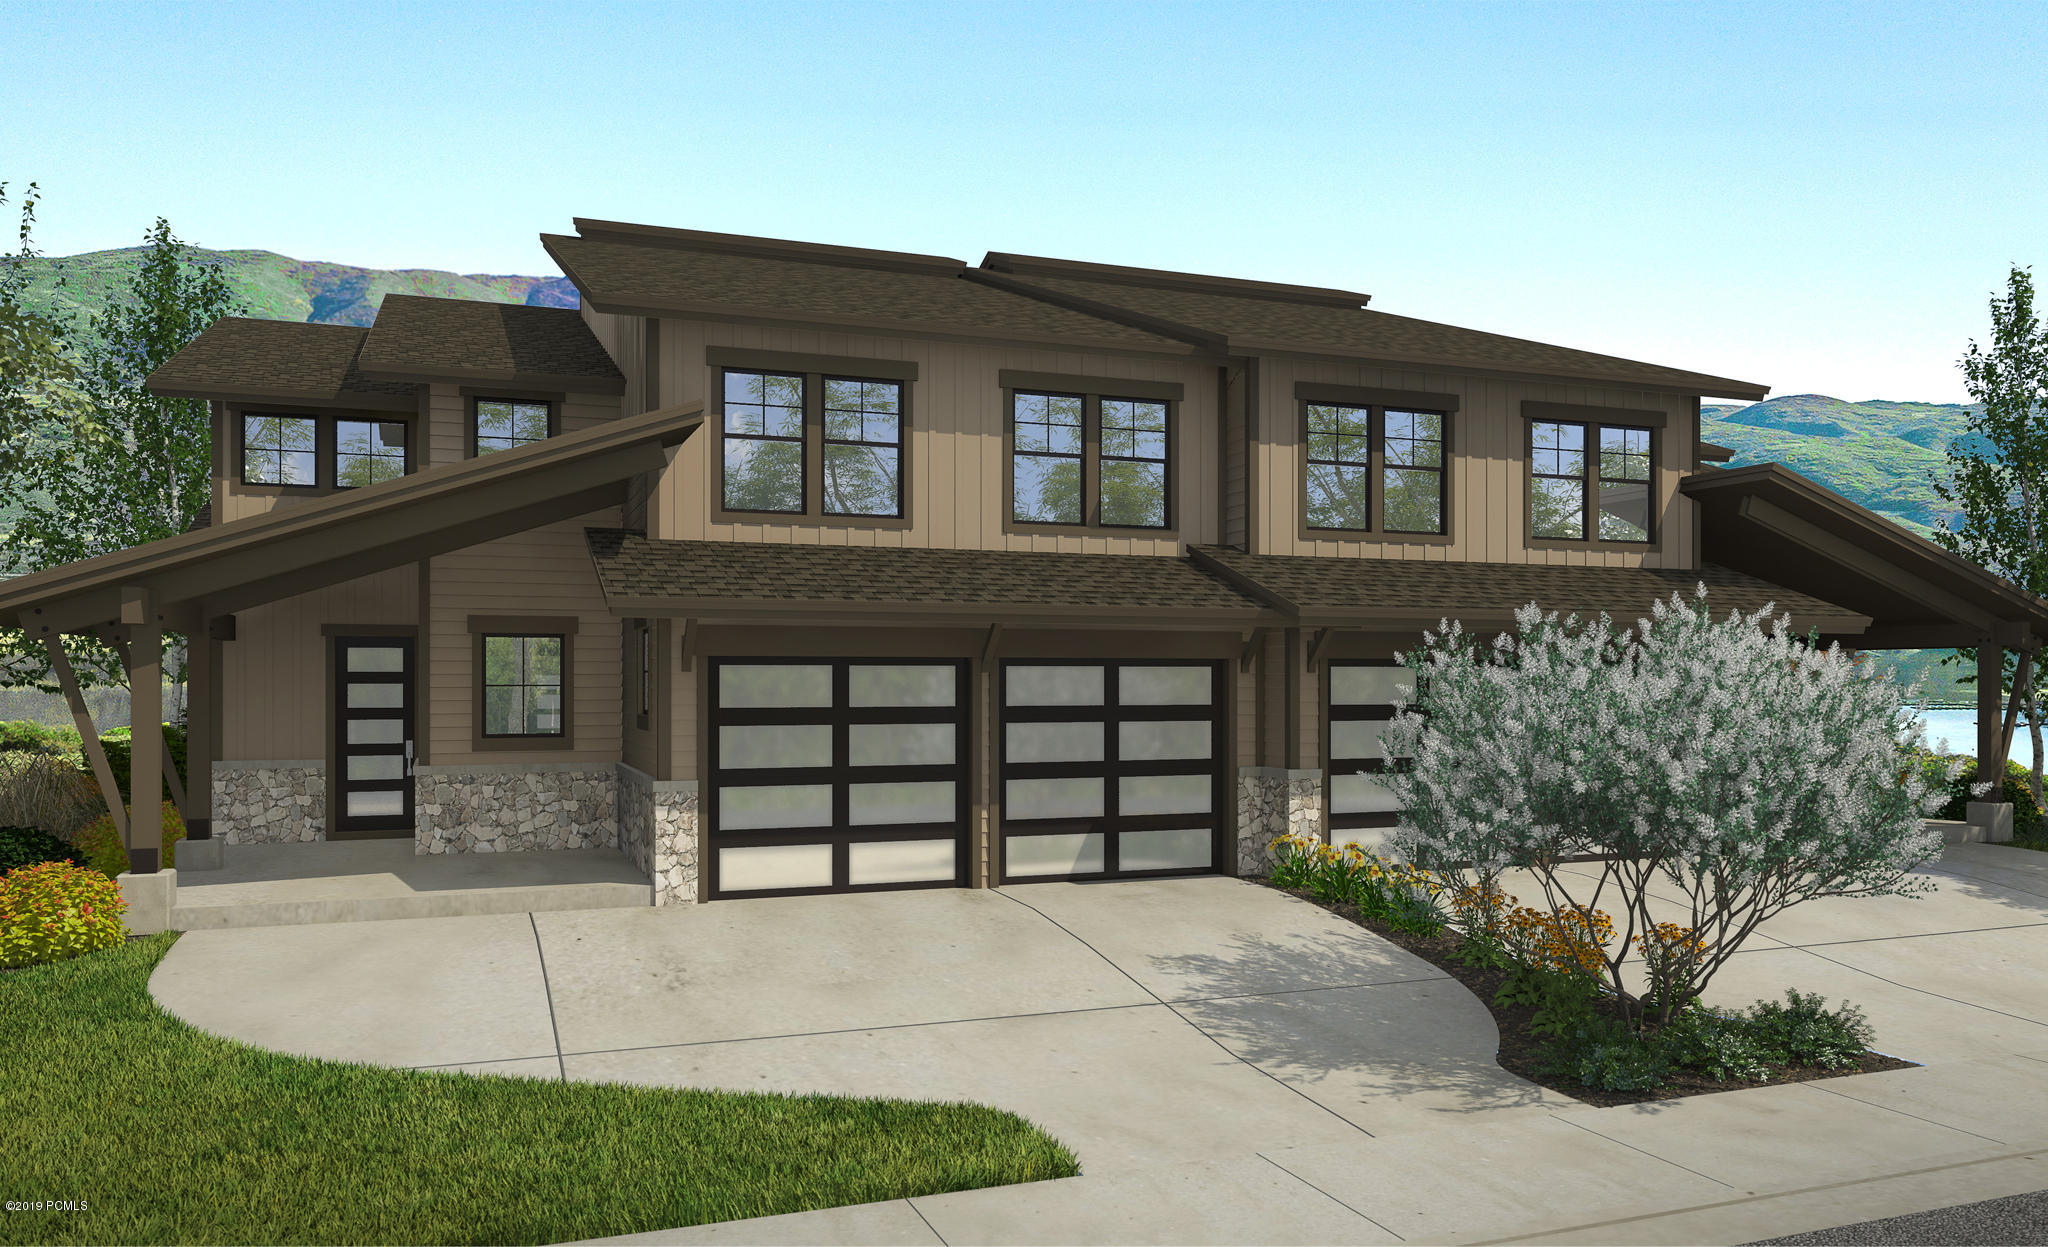 9982 Rail Trail Circle, Heber City, Utah 84032, 4 Bedrooms Bedrooms, ,4 BathroomsBathrooms,Condominium,For Sale,Rail Trail,20190109112430415765000000